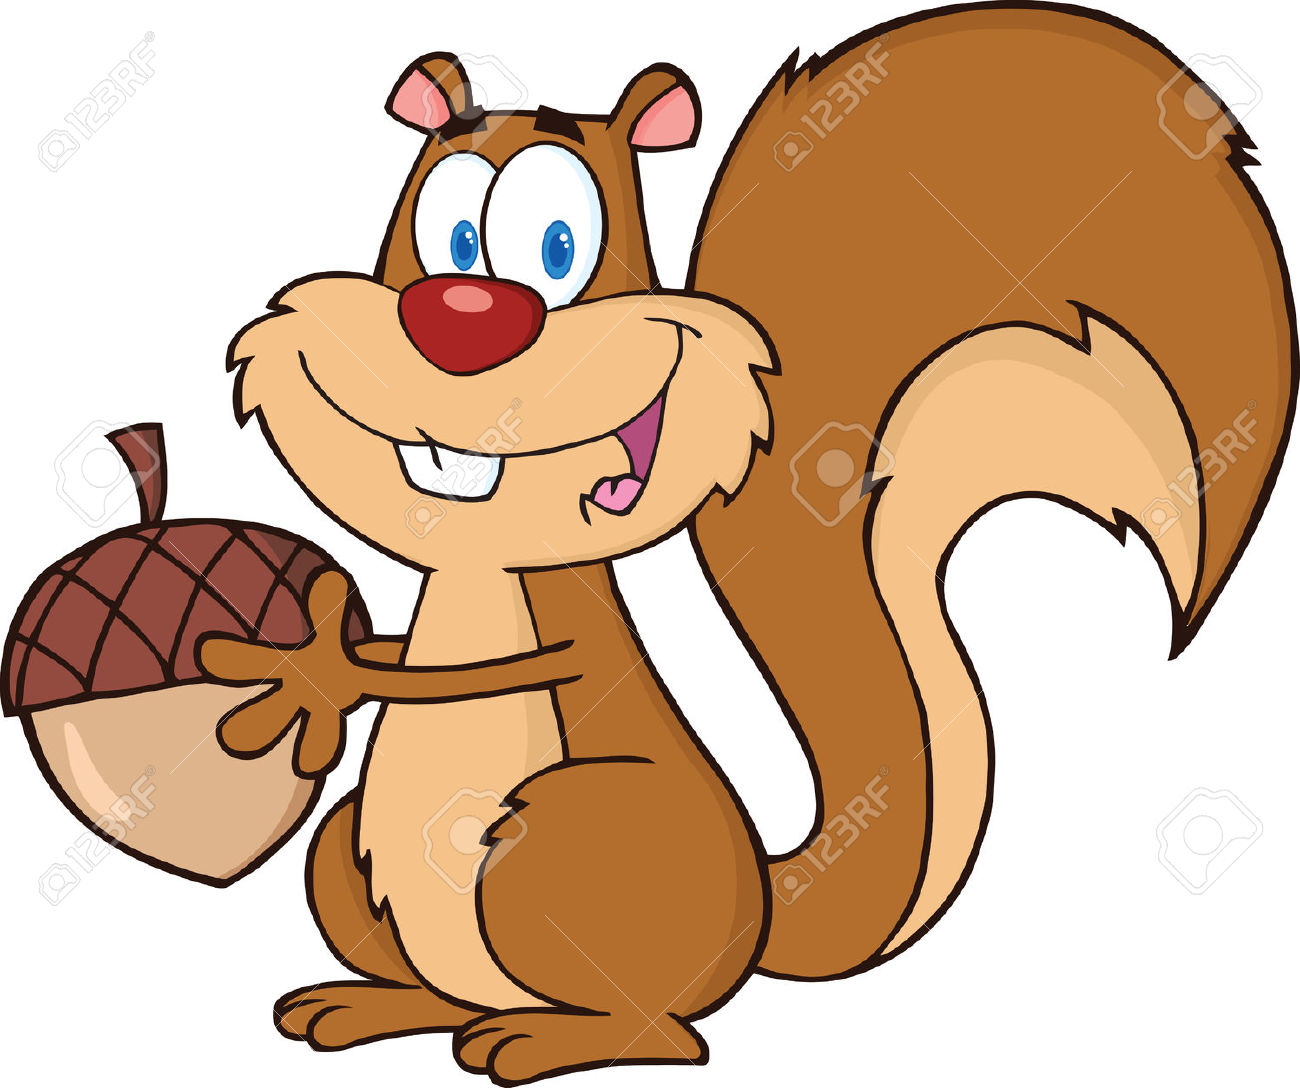 Royalty free squirrel clipart clip freeuse stock Best Squirrel Clipart #9577 - Clipartion.com clip freeuse stock